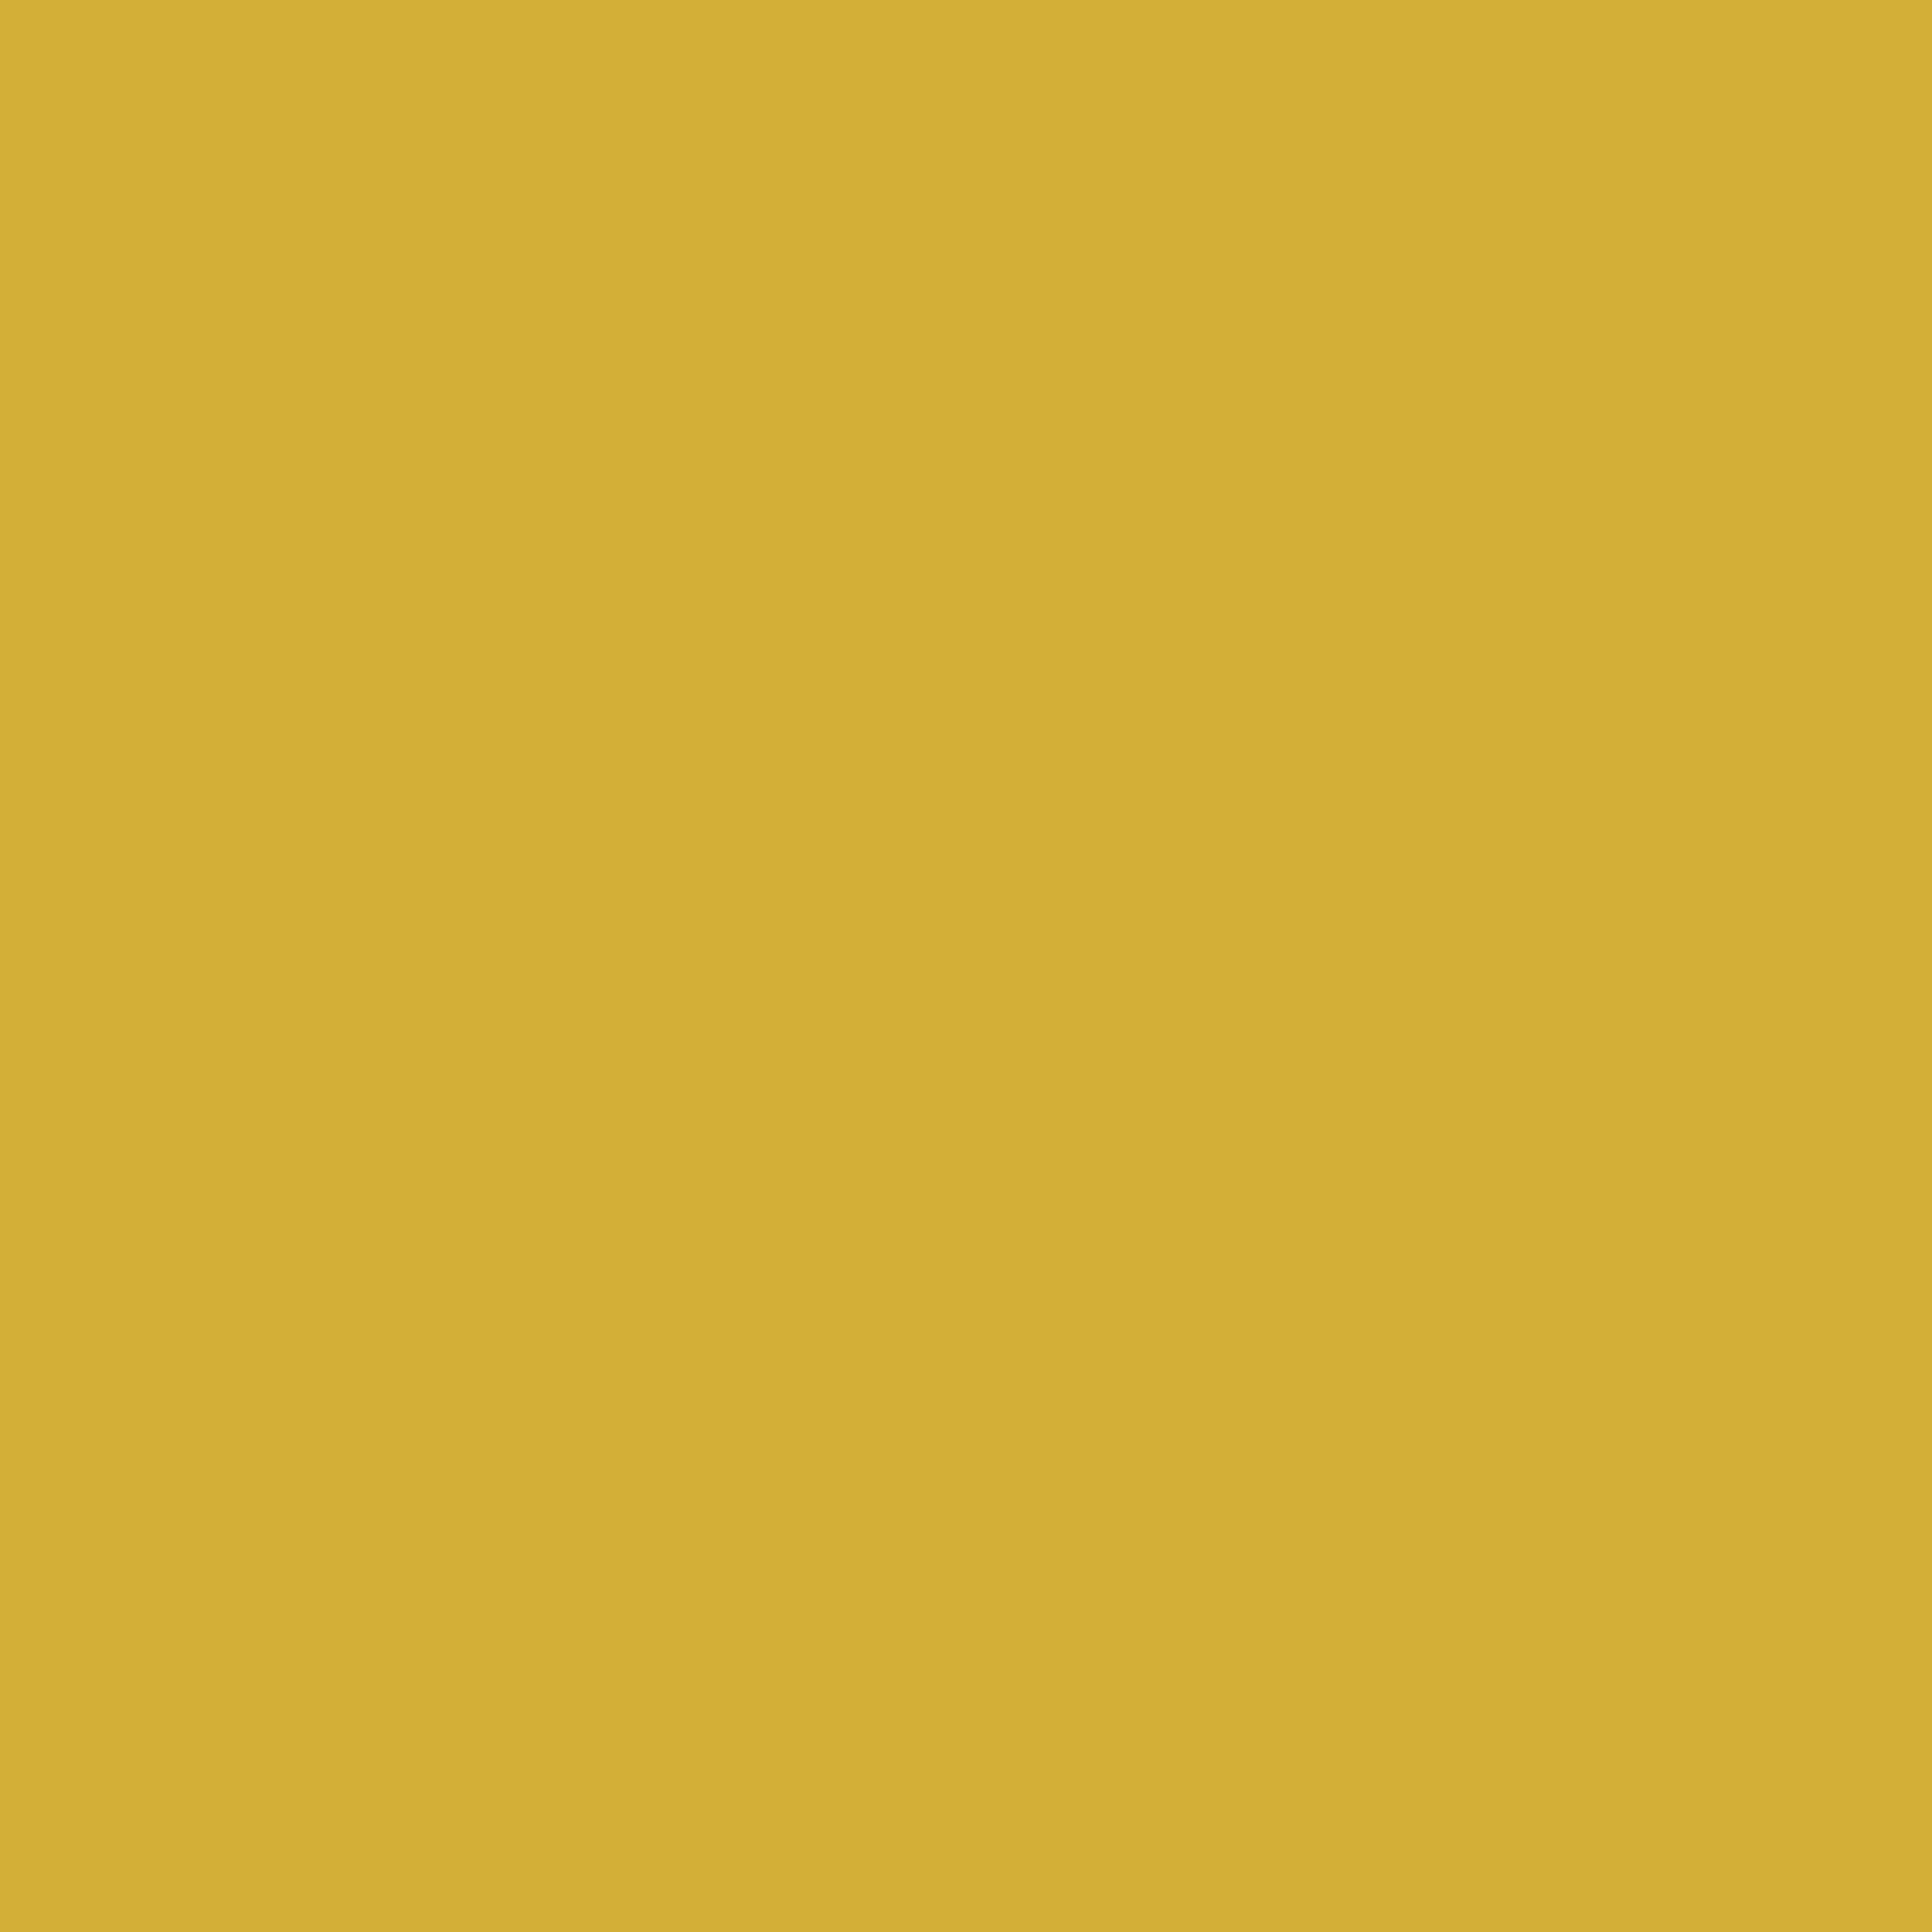 2048x2048 Gold Metallic Solid Color Background